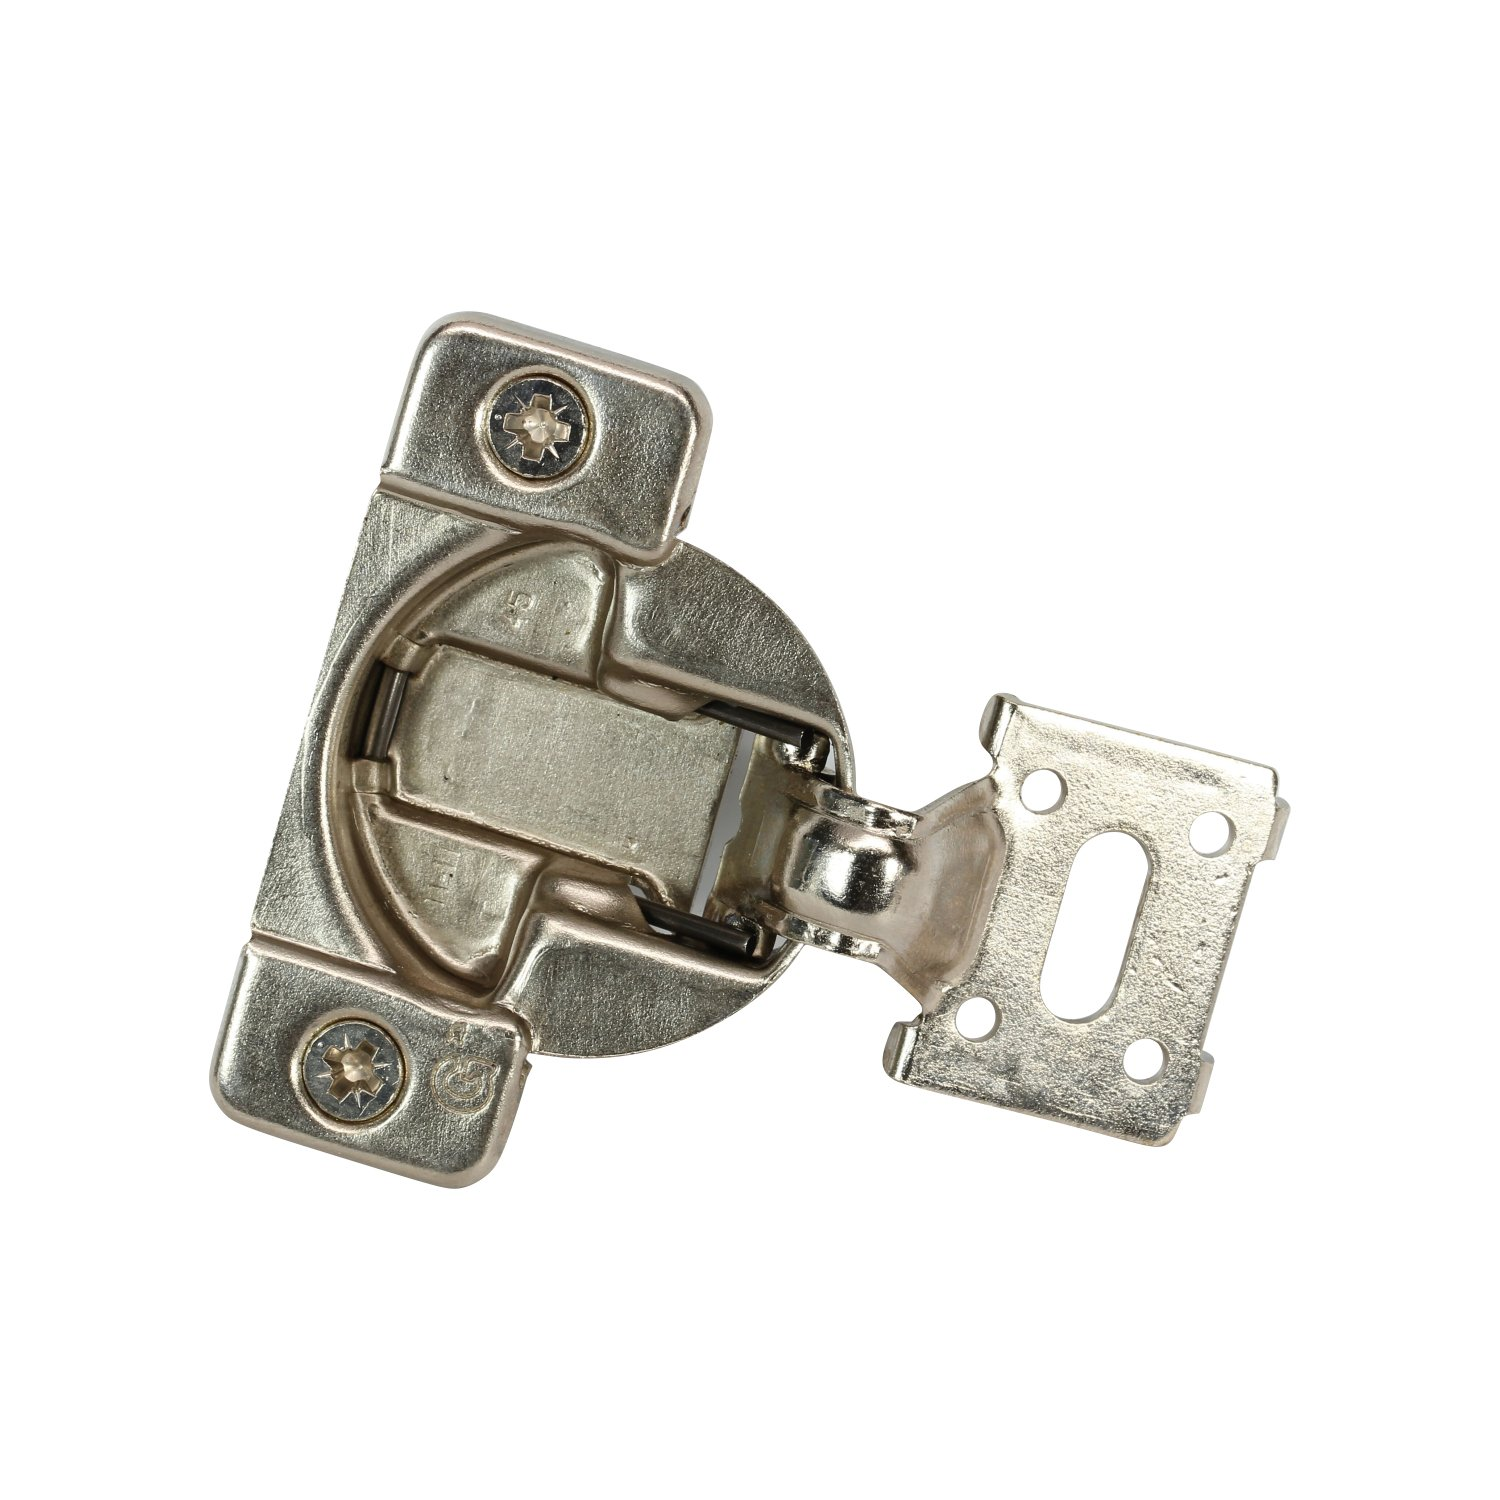 10 Pack Rok Hardware Grass TEC 861 108 Degree 7/16'' Overlay Self Close Press in Dowel Compact Cabinet Hinge 04728-16 45mm Boring Pattern